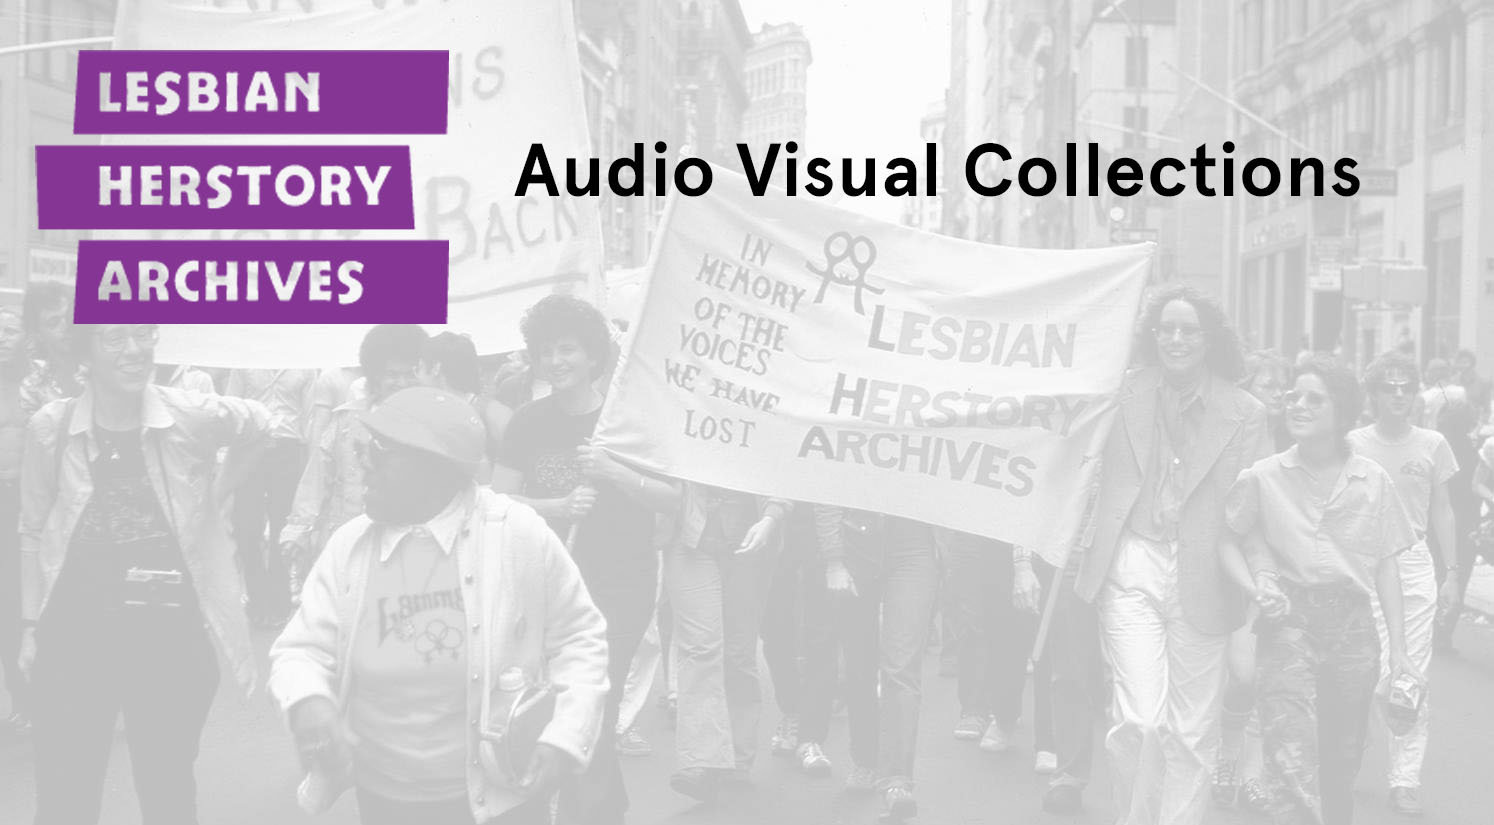 Lesbian Herstory Archives Audio Visual Collections